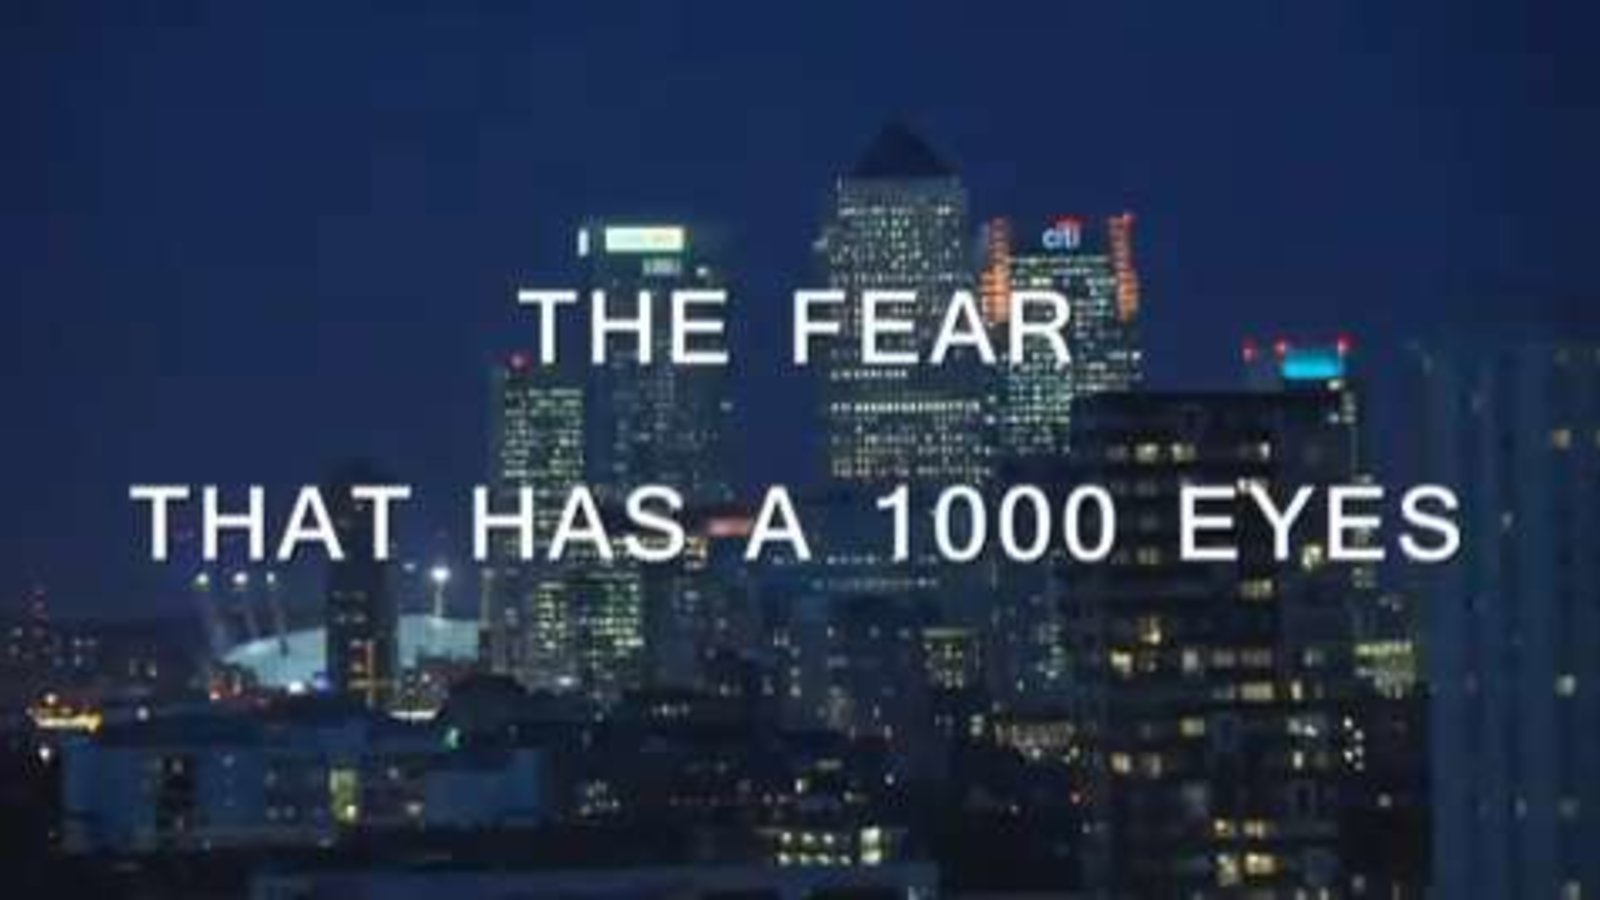 The Fear That Has 1000 Eyes - Cities in the Age of Terrorism